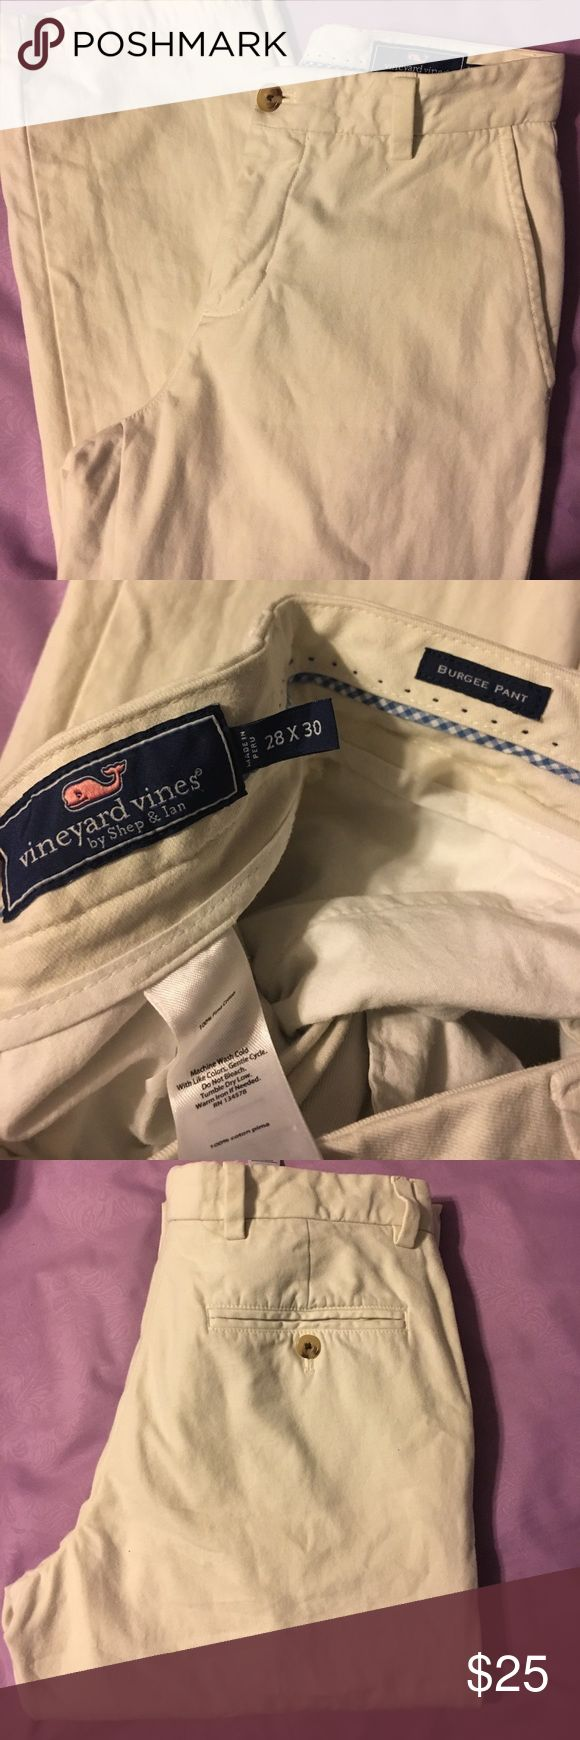 SATURDAY SALE ⭐️Vineyard Vine Burgee Pant EUC, No spots, stains or marks! Only wore a few times before my son outgrew them.  Size 28/30 Vineyard Vines Pants Chinos & Khakis